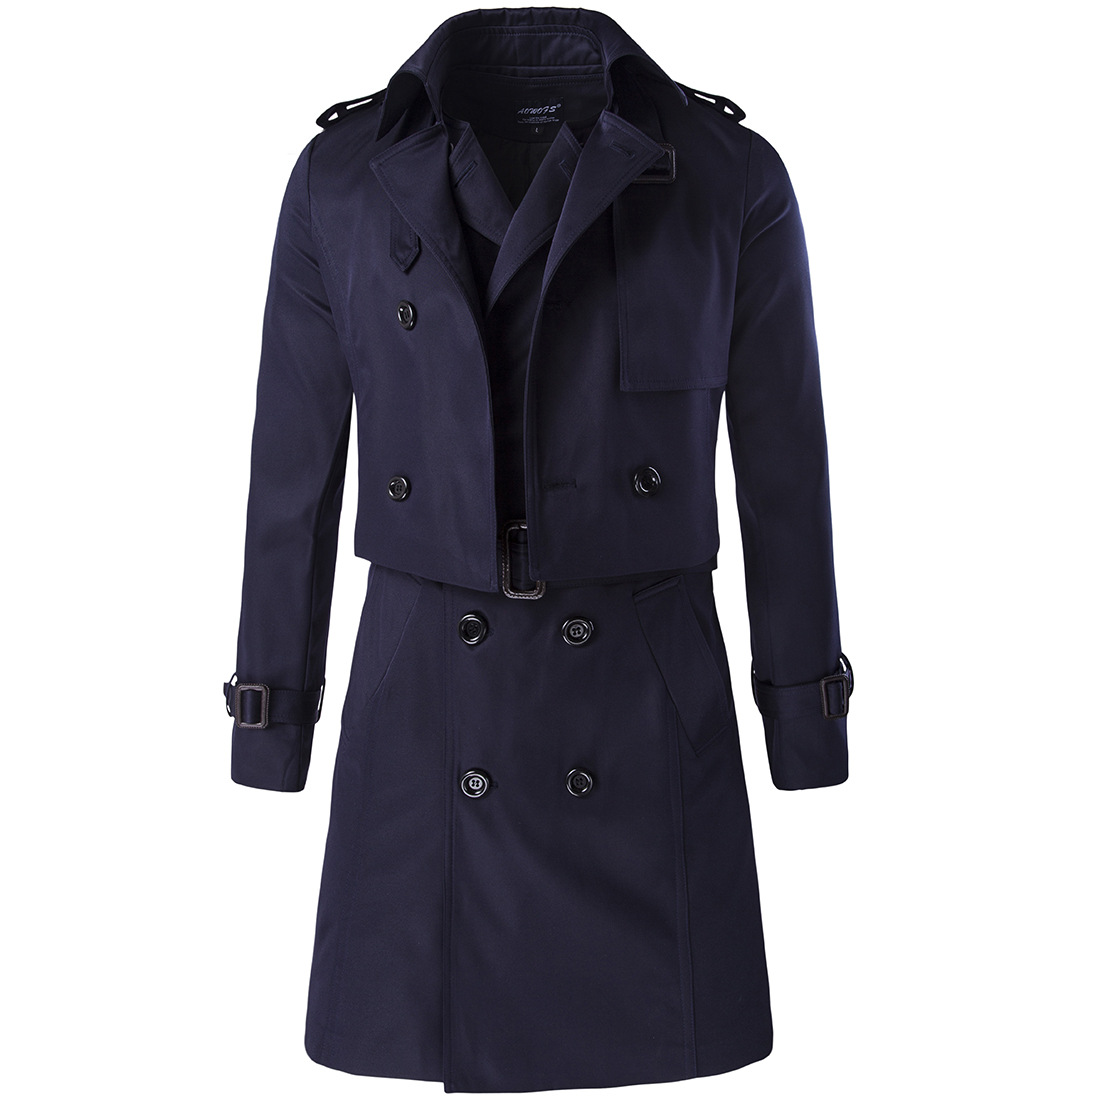 Aowofs Autumn Clothing New Style Trendy Two-Piece Set Long Double Breasted   Trench   Coat Y600